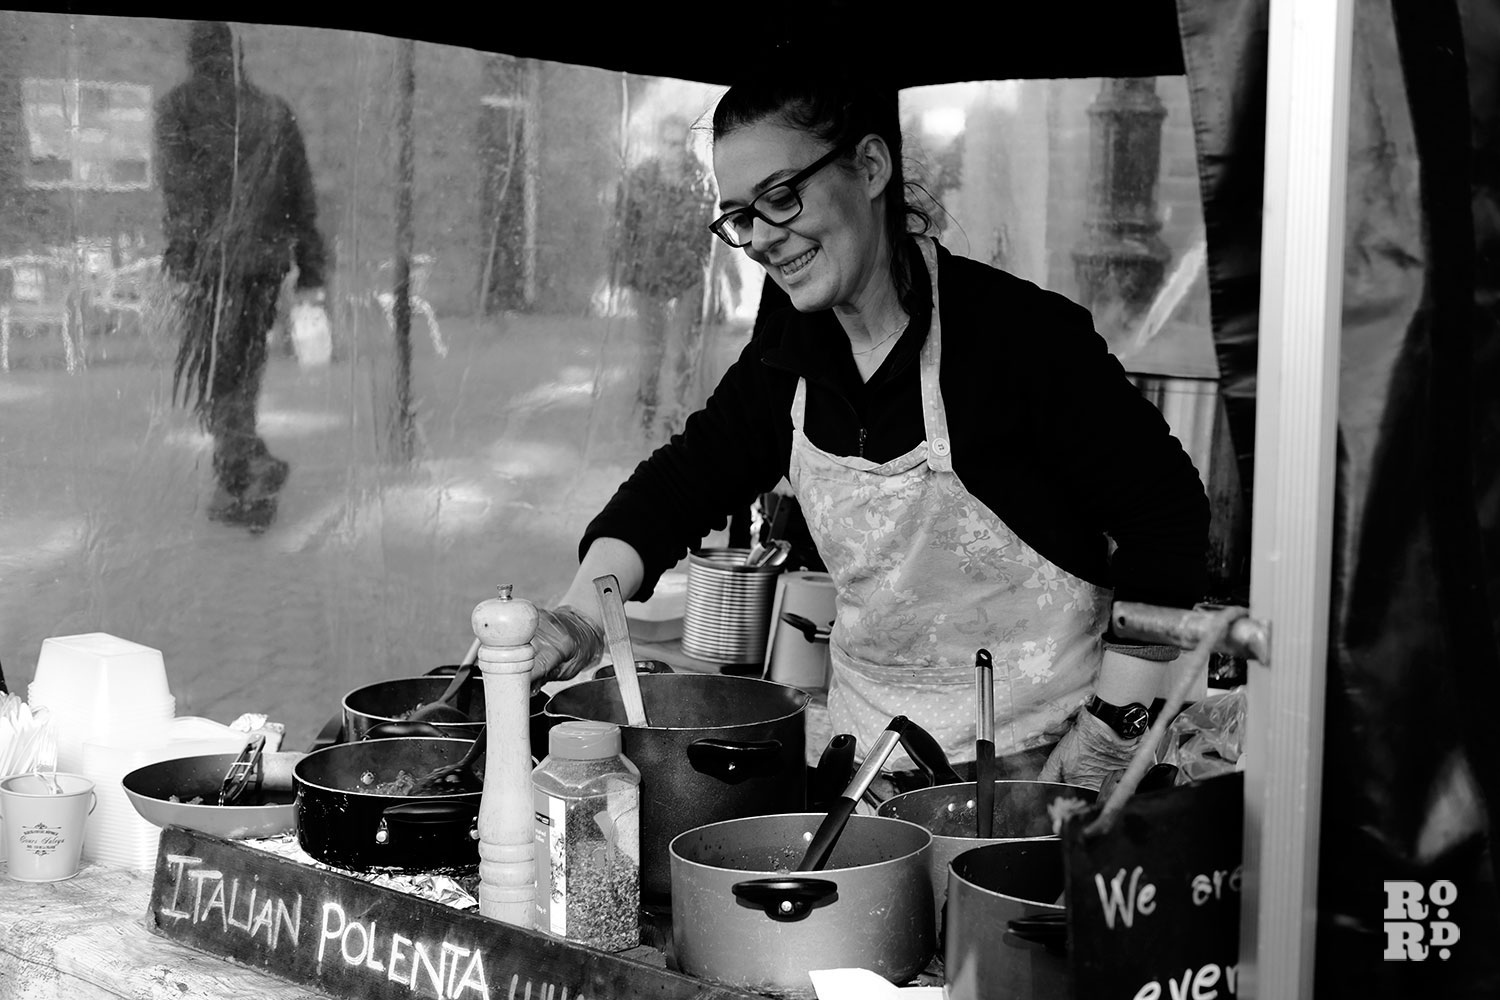 a woman serving food at a market stall